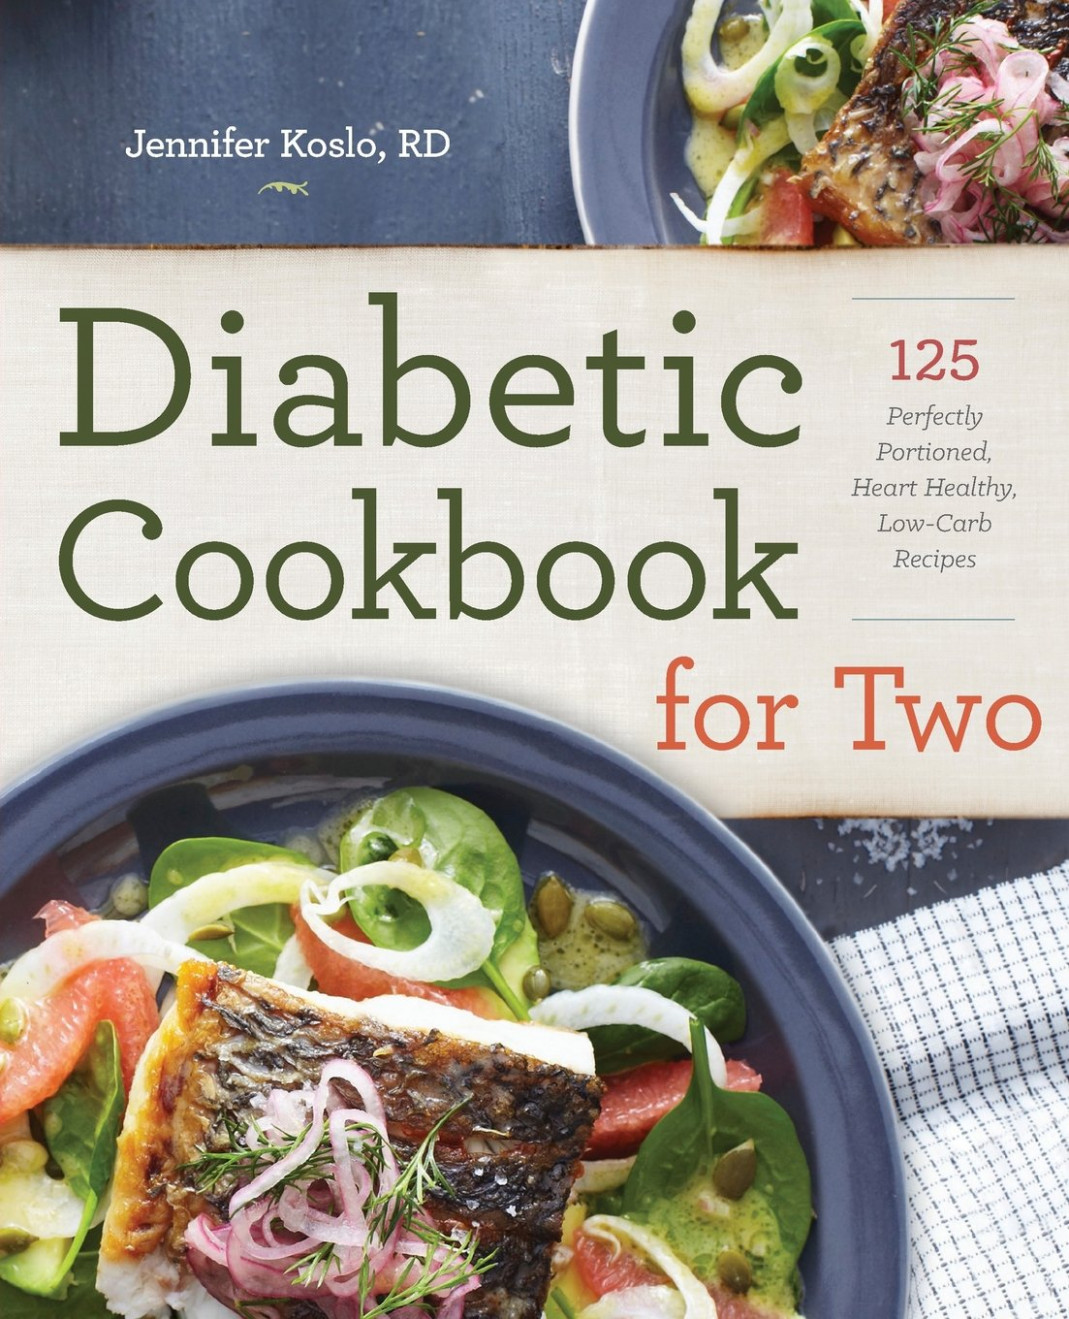 Diabetic Cookbook for Two: 14 Perfectly Portioned, Heart ..